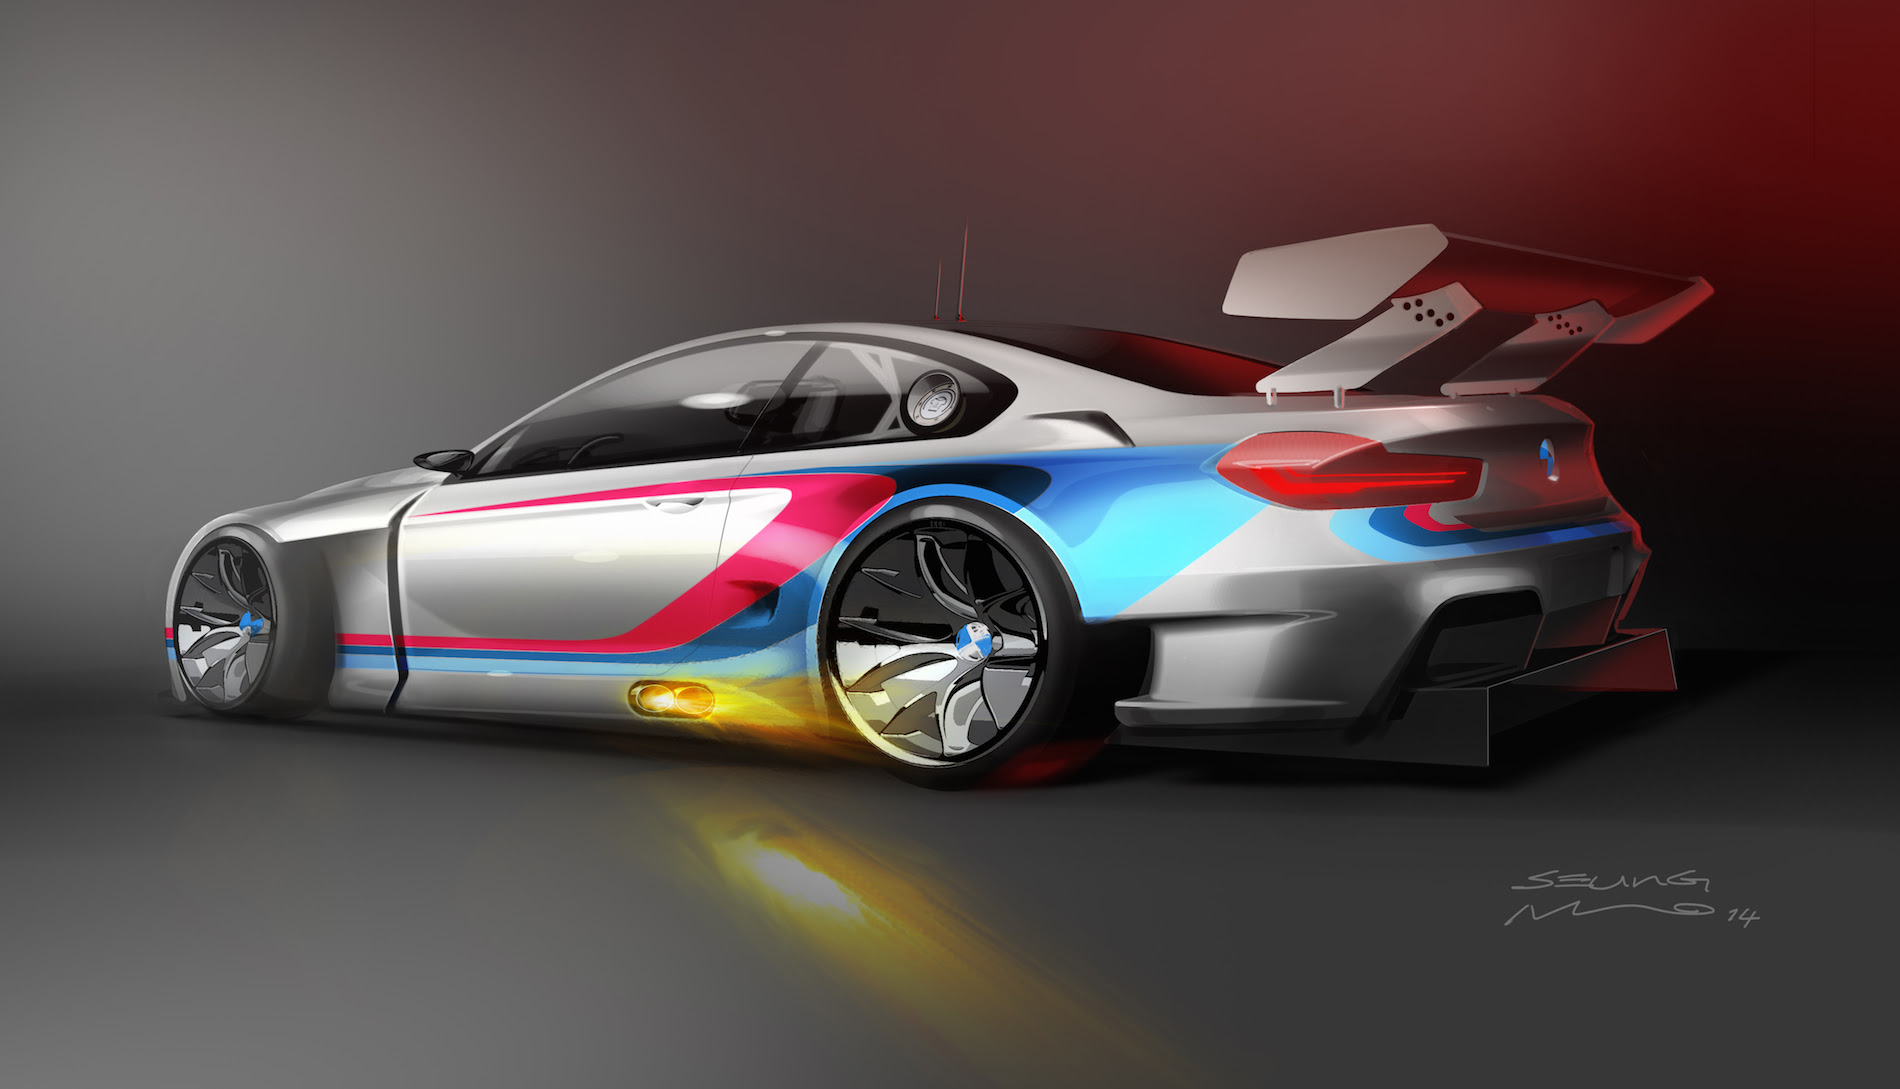 BMW Motorsport Announces Plans for the BMW M6 GTLM - BimmerFile